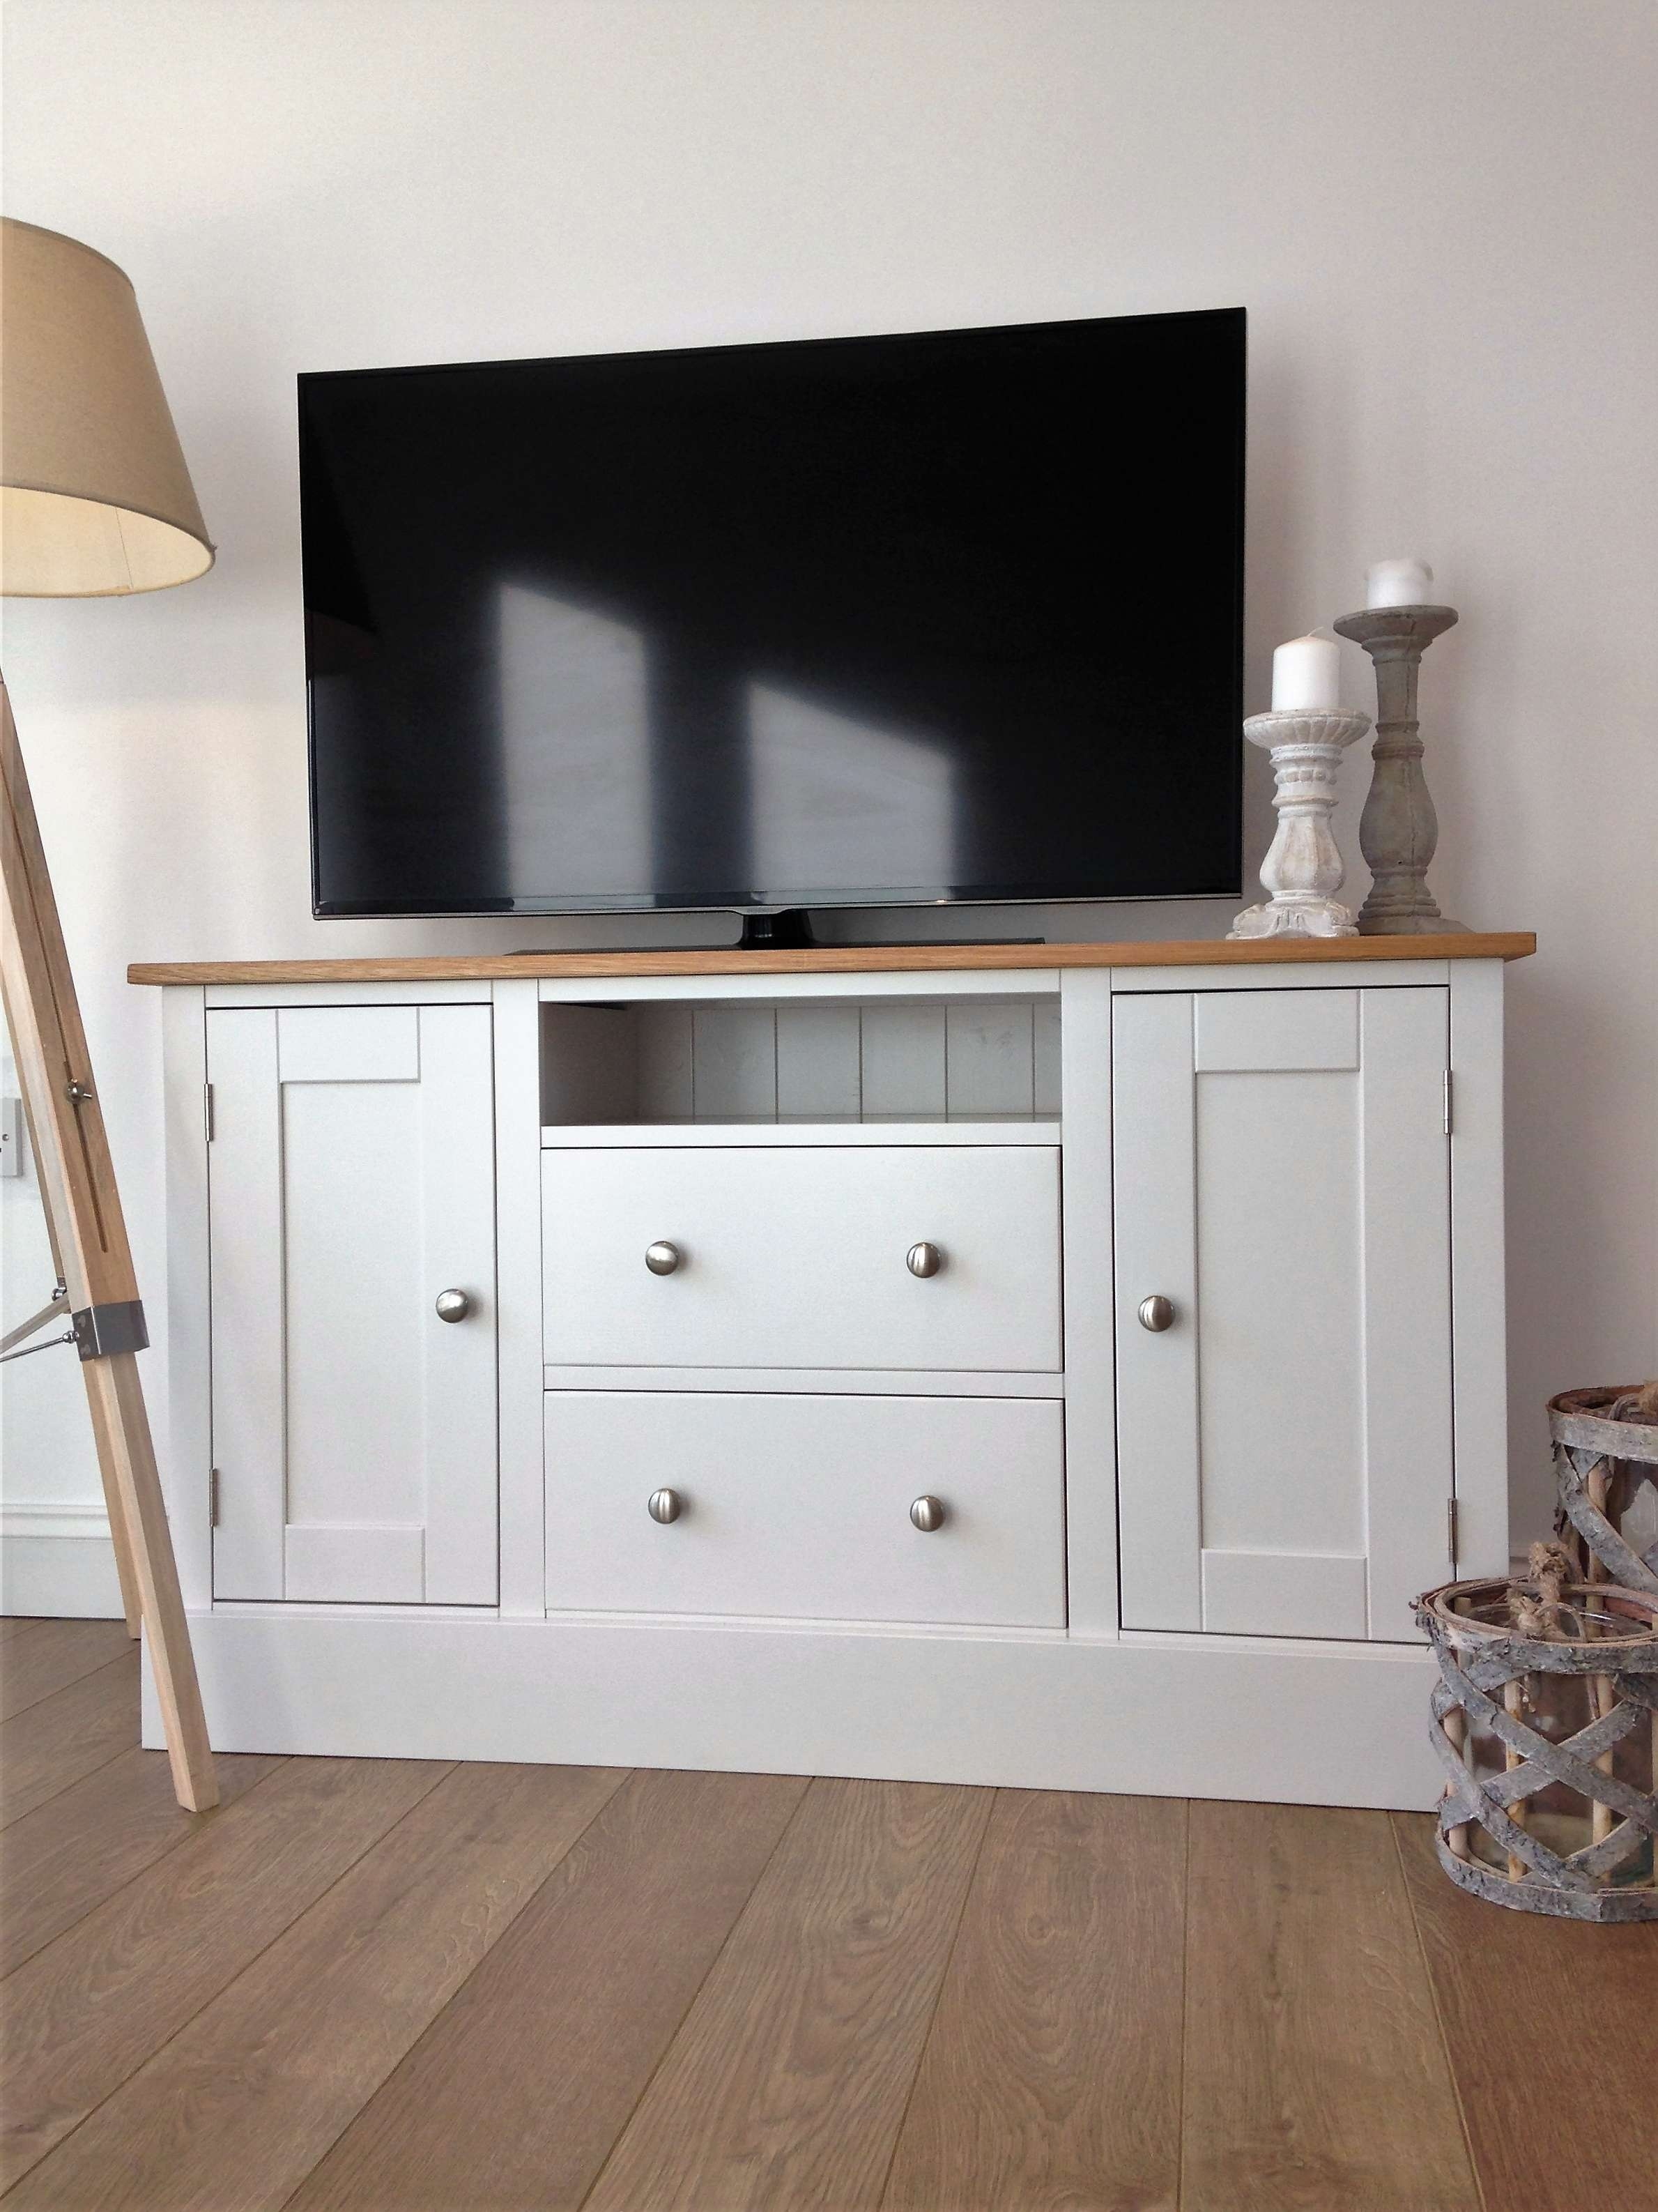 4Ft Painted Tv Cabinet Made Of Solid Oak & Pine – Nest At Number 20 In White Painted Tv Cabinets (View 1 of 20)